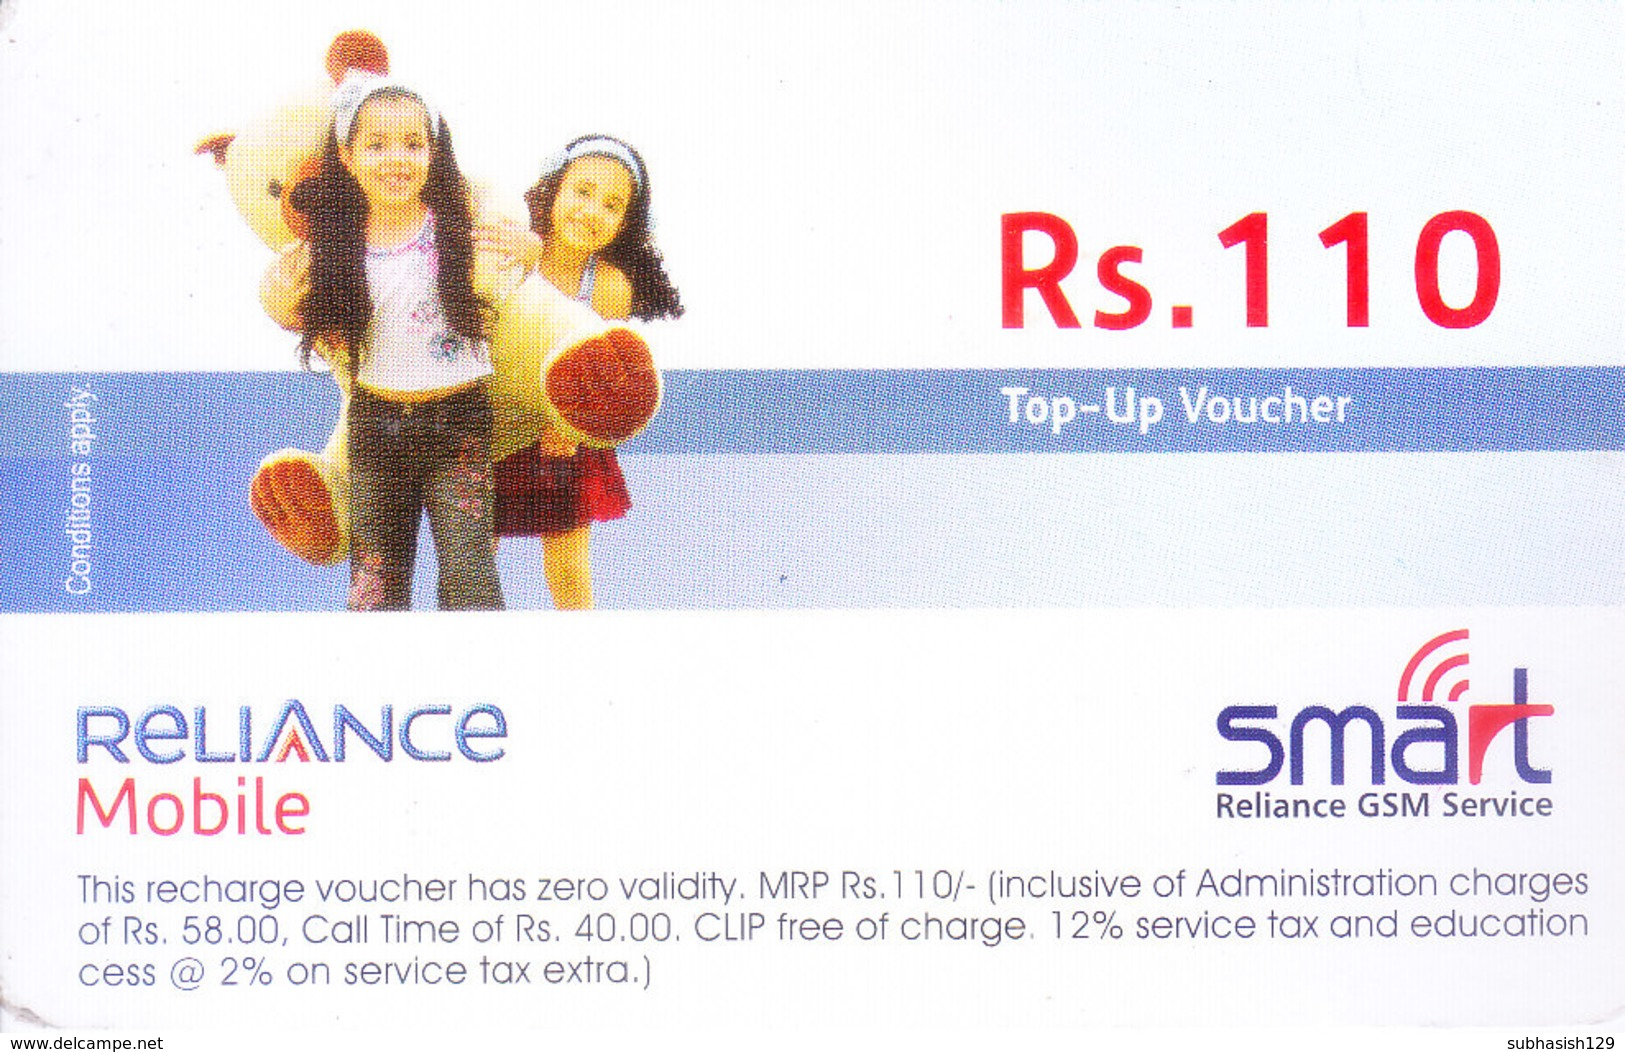 MOBILE / TELEPHONE CARD, INDIA - RELIANCE MOBILE, SMART RS. 110 TOP UP VOUCHER - Unclassified